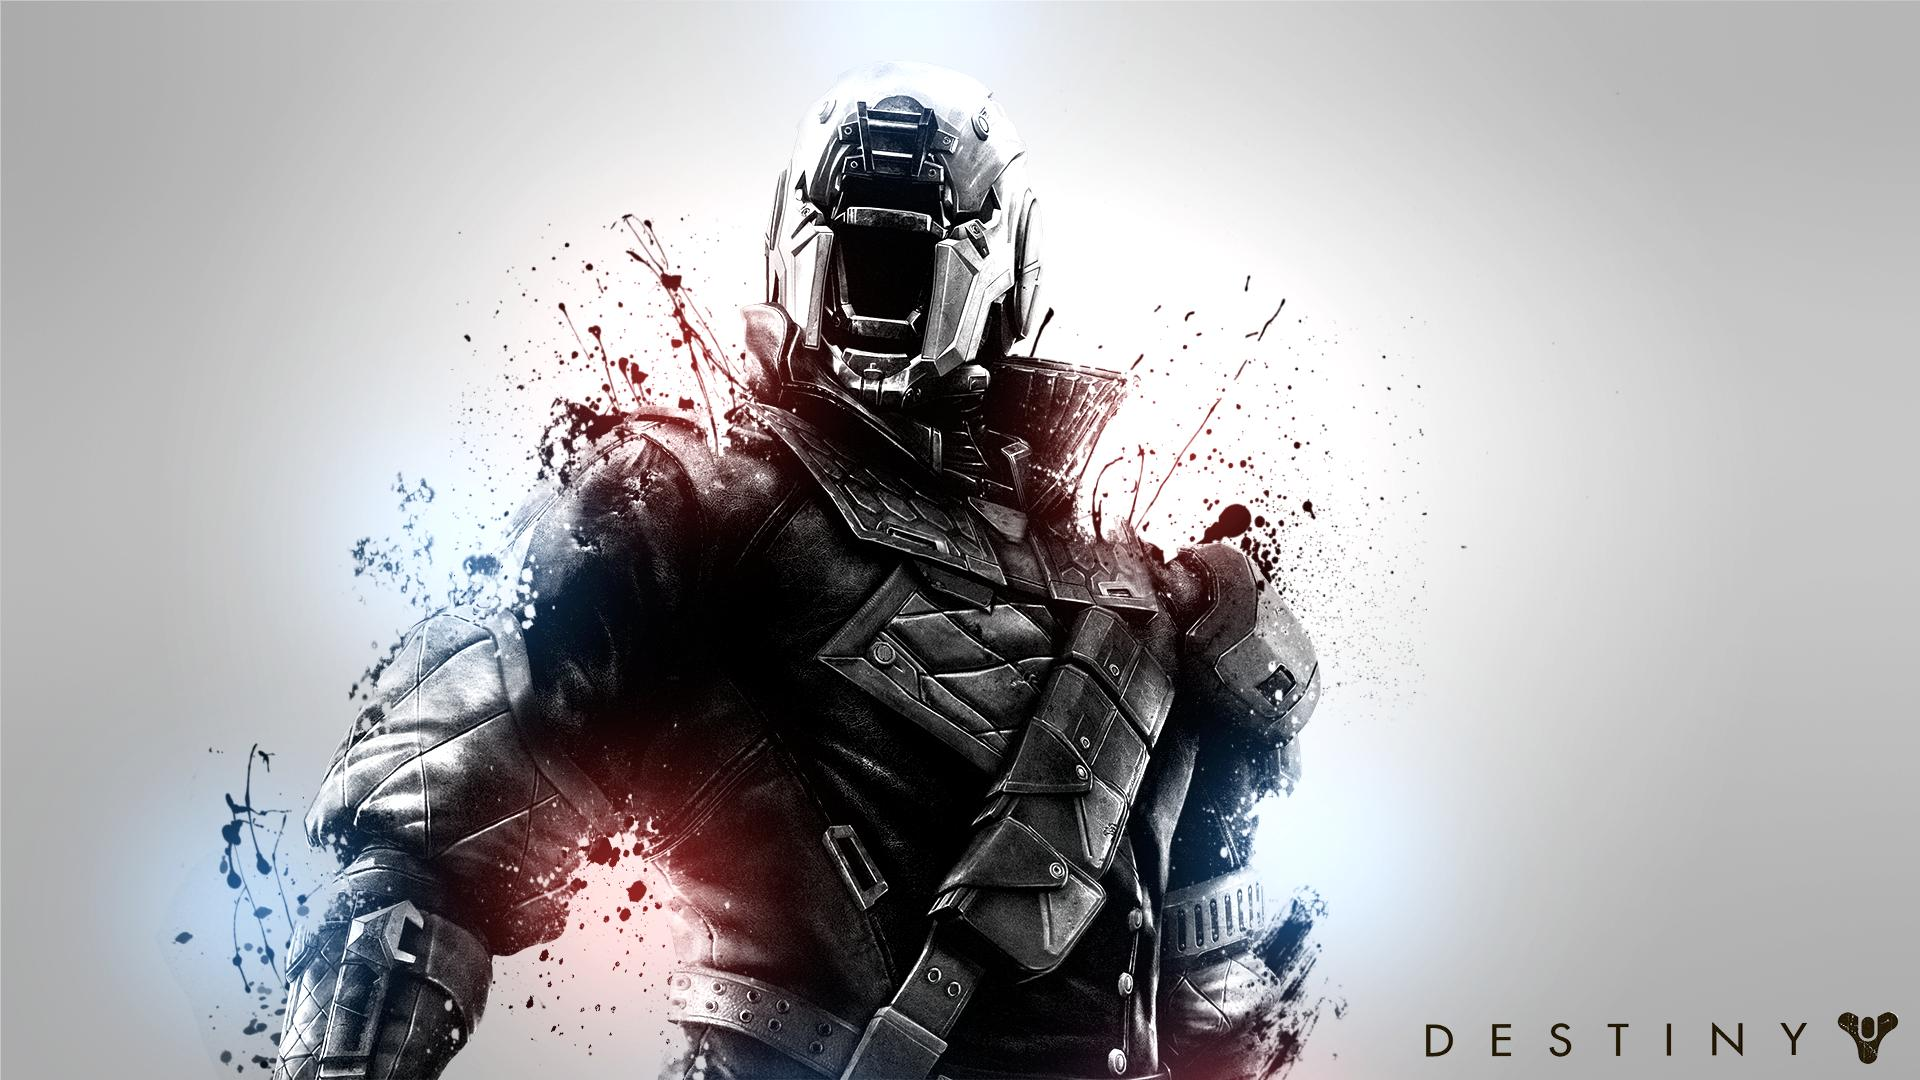 ... destiny-wallpaper-3 ...